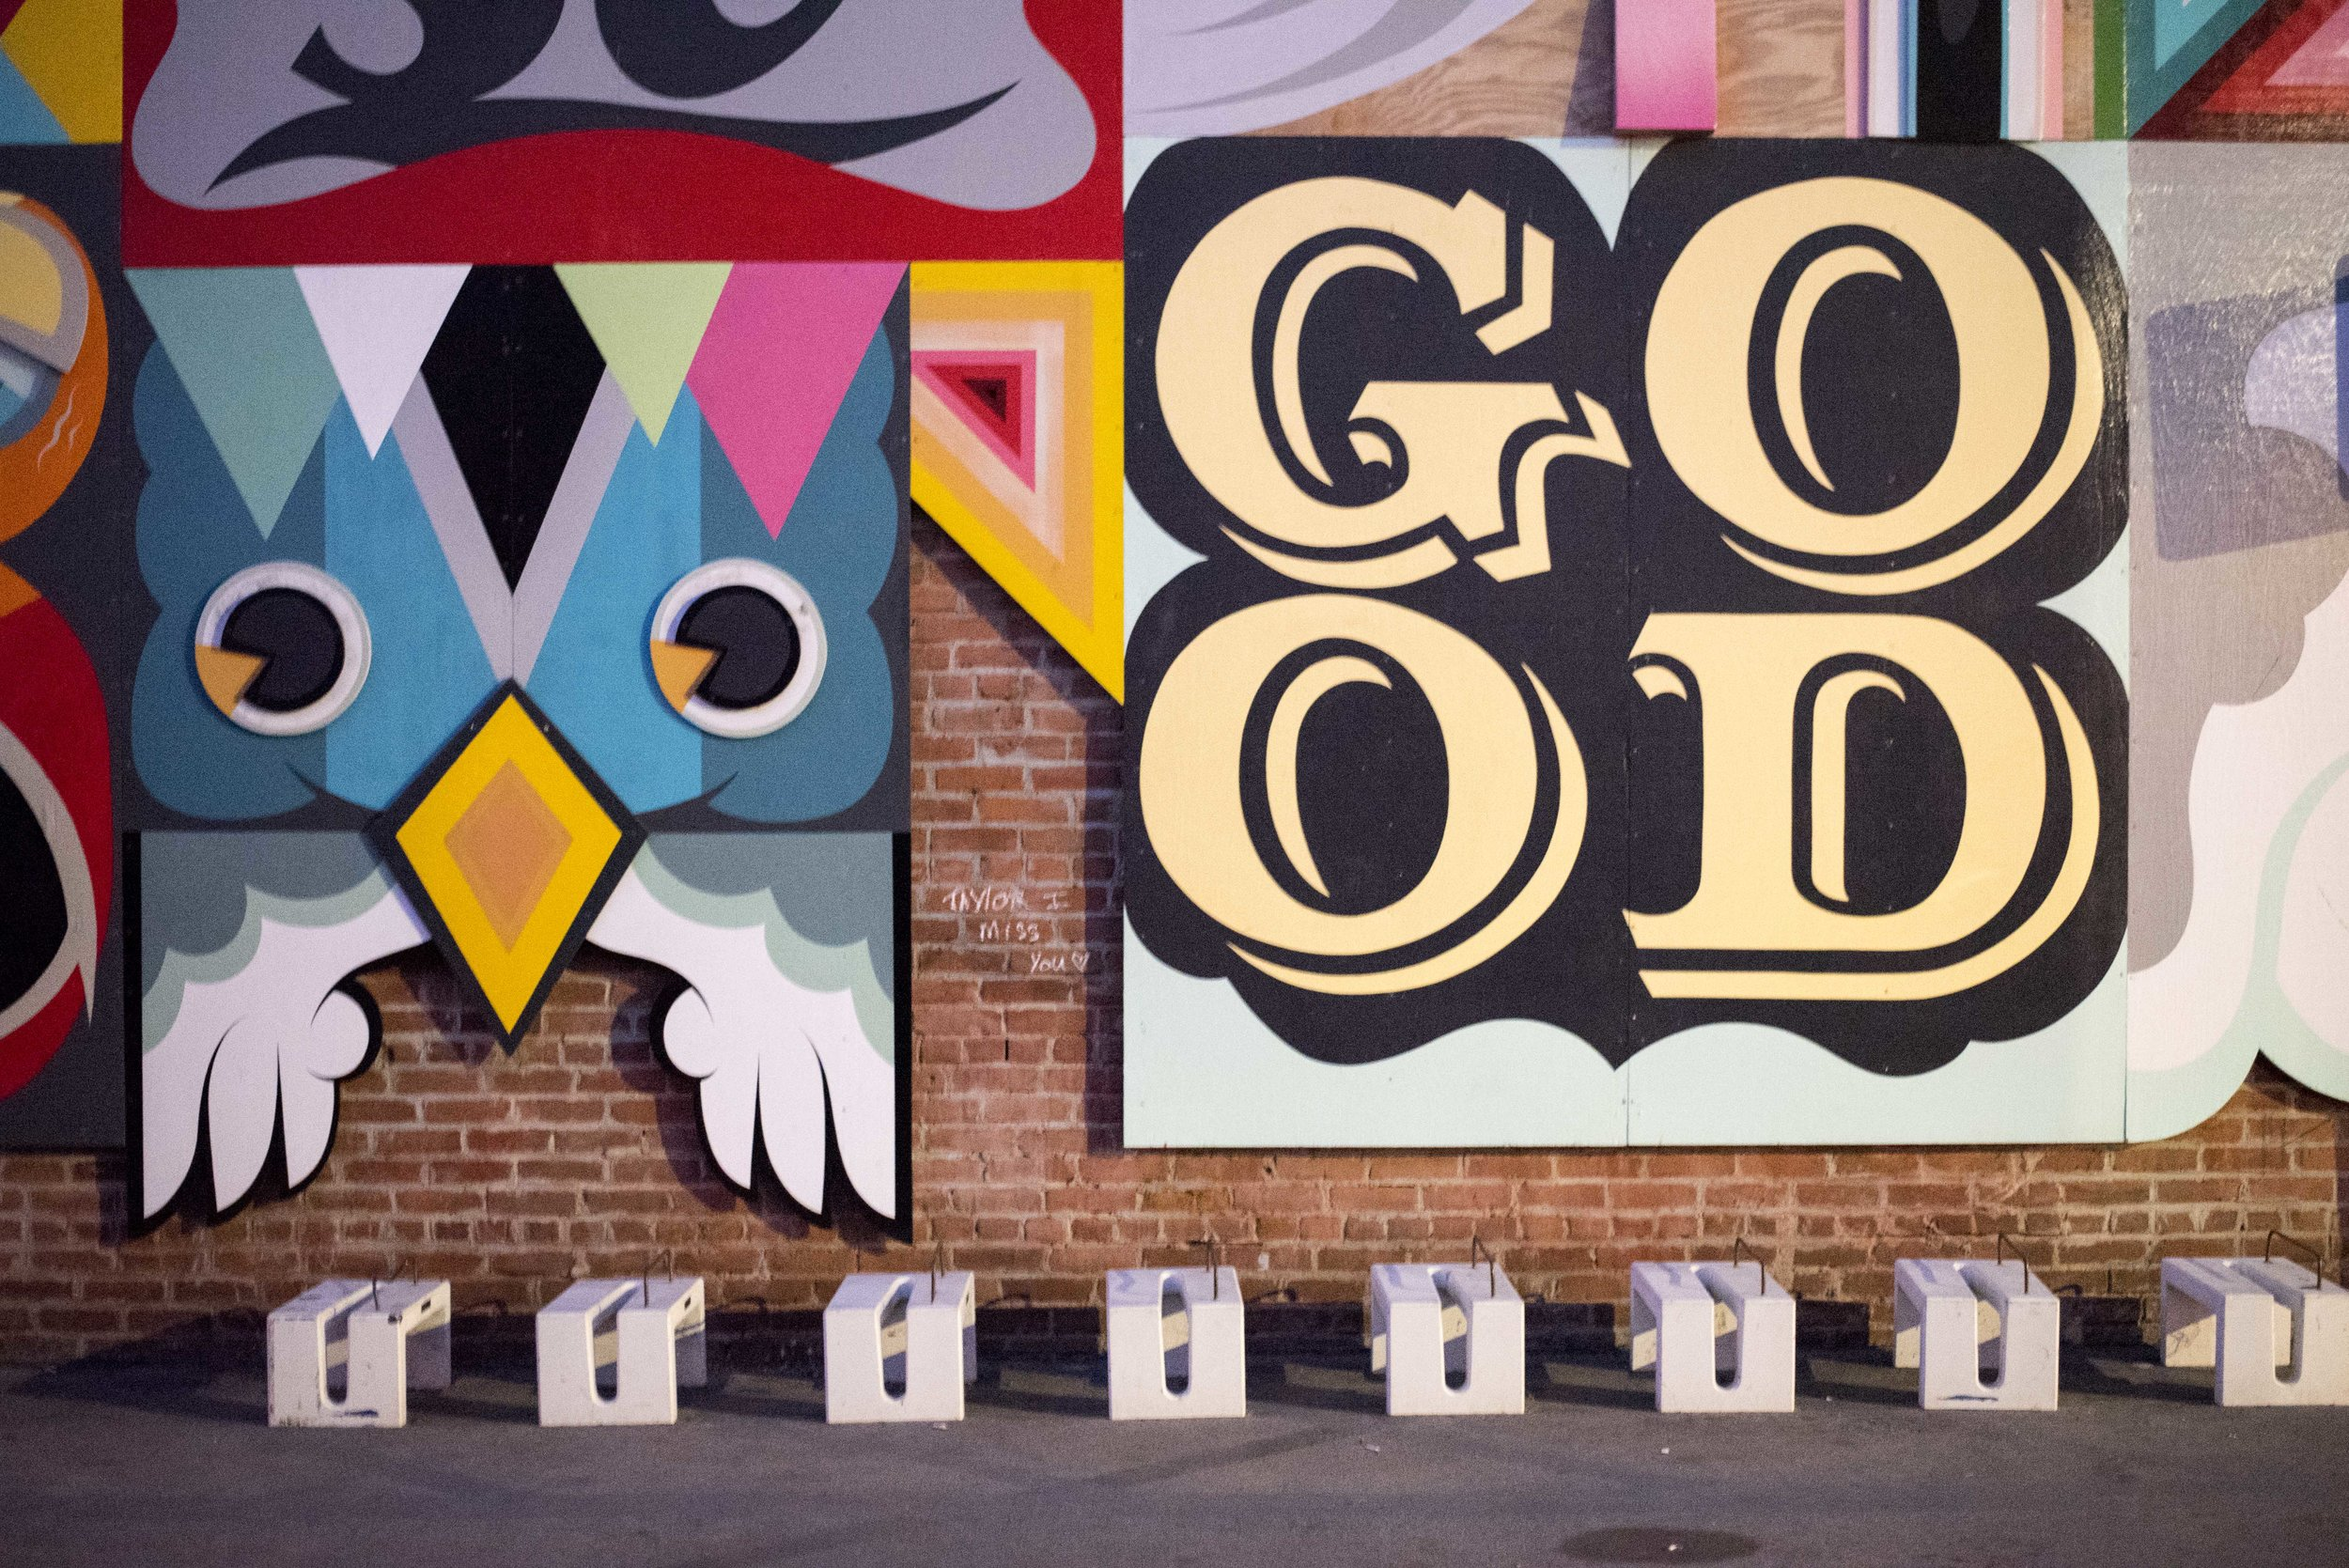 Bright and bold illustrations cover the street alleys.